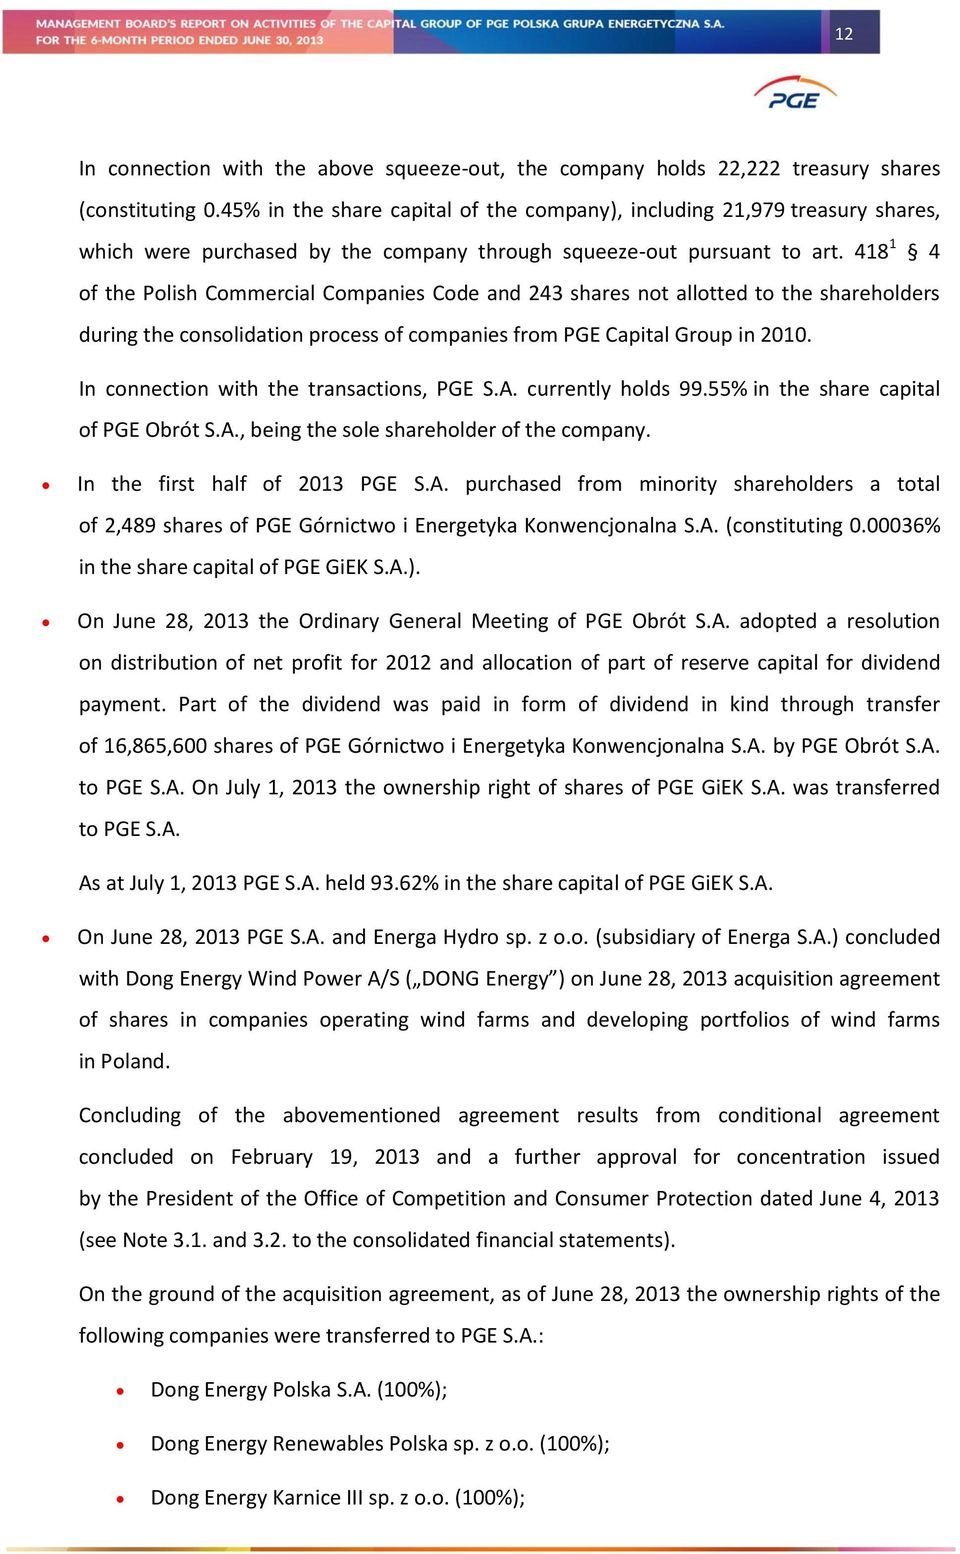 418 1 4 of the Polish Commercial Companies Code and 243 shares not allotted to the shareholders during the consolidation process of companies from PGE Capital Group in 2010.